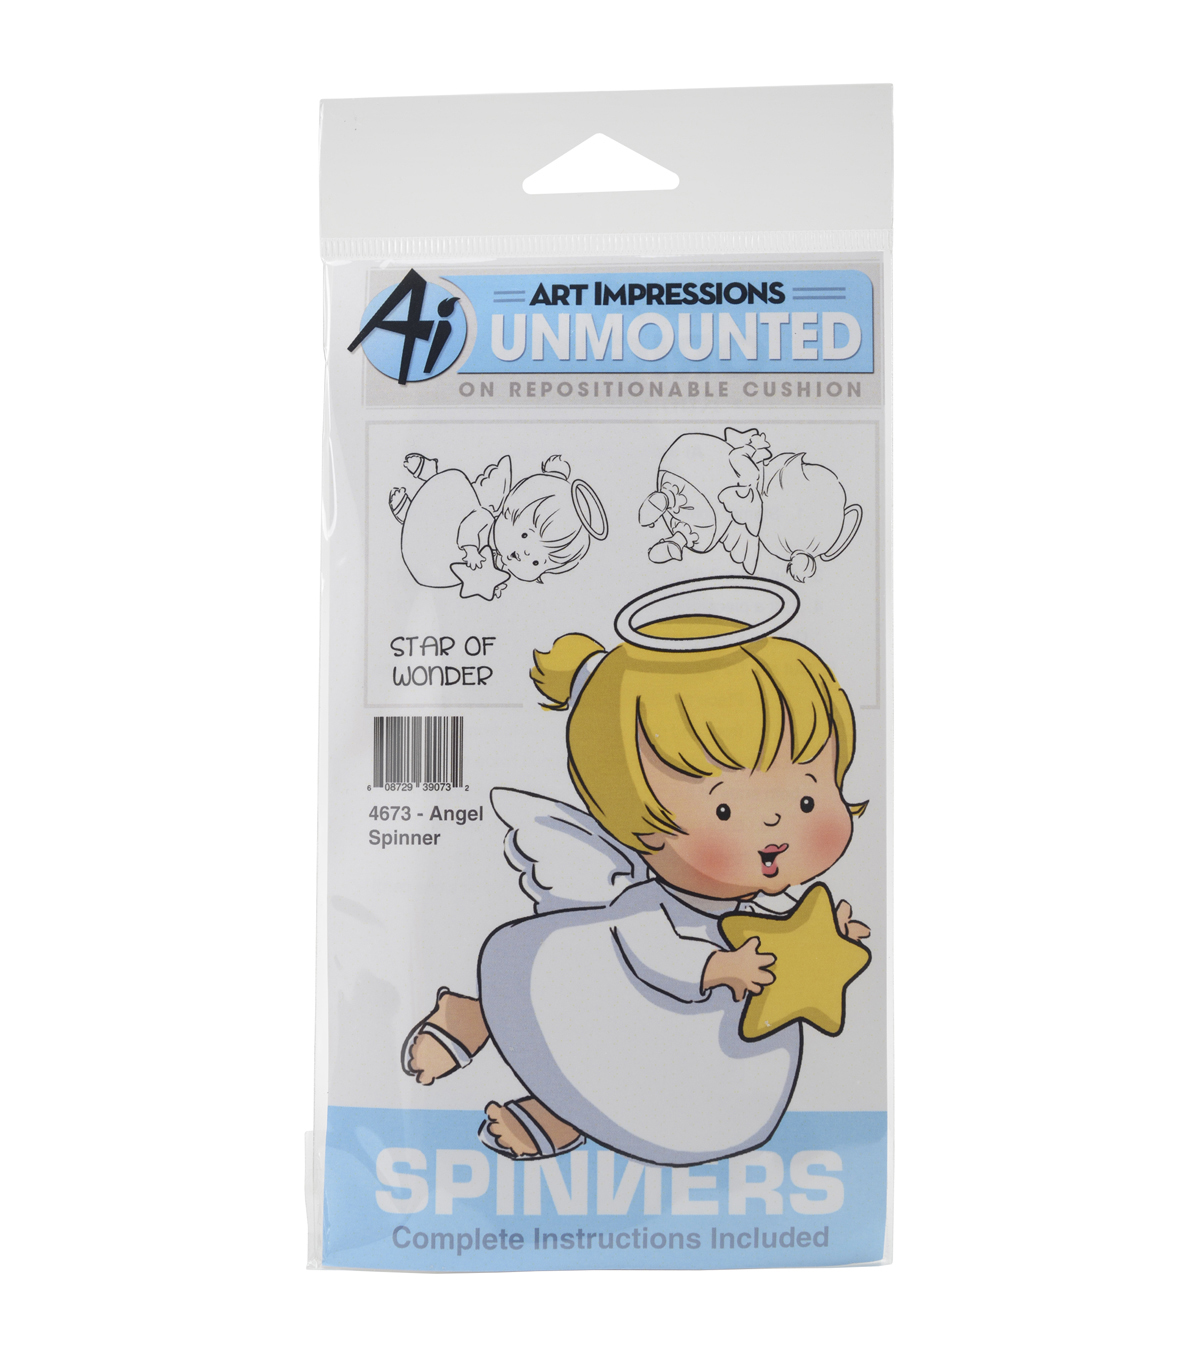 Art Impressions Spinners Unmounted Cling Rubber Stamp-Angel